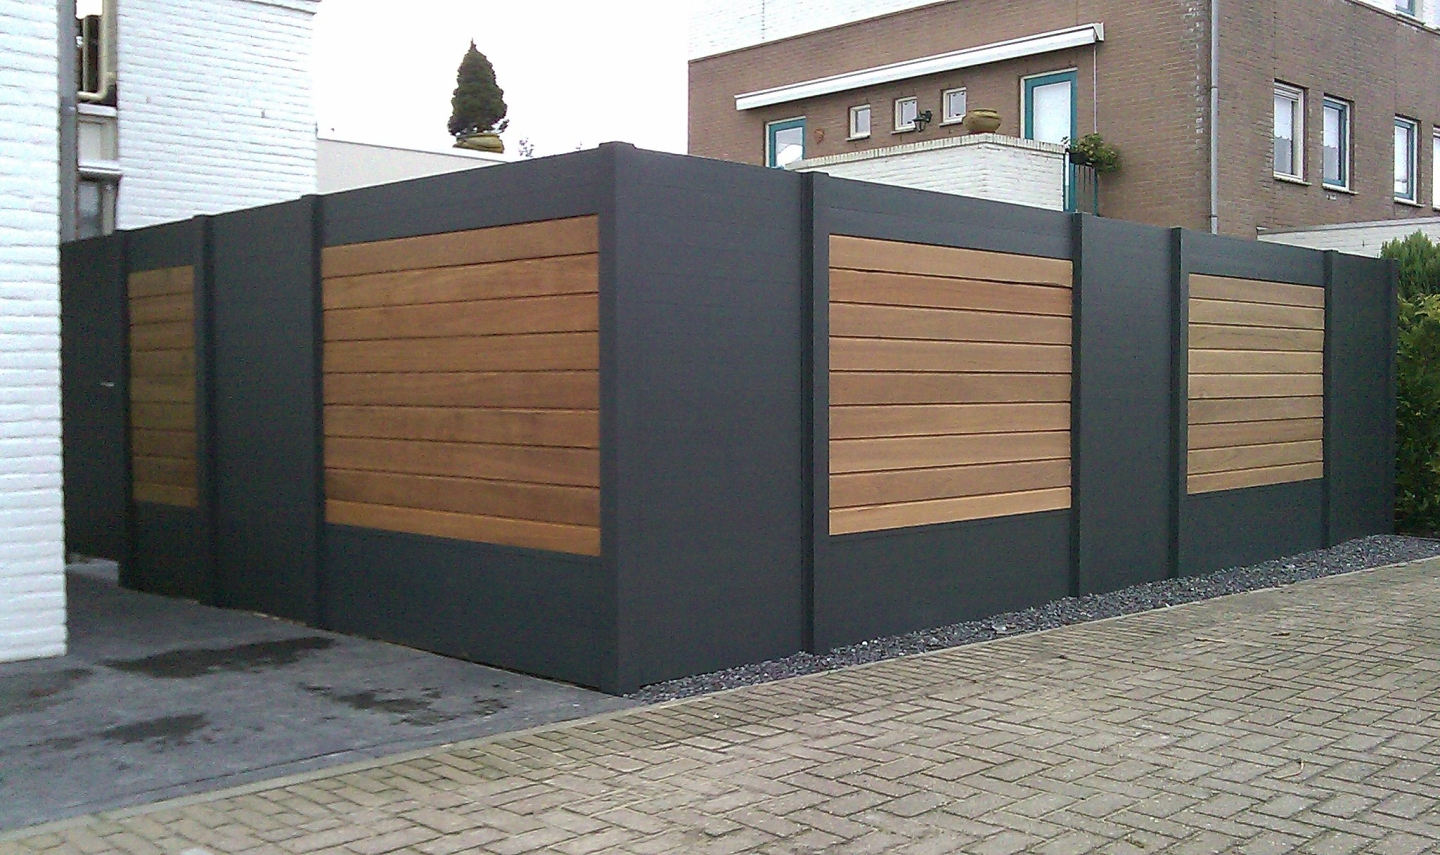 IdeAL scherm | Antraciet- Bangkirai | 180x180 | 9 planks